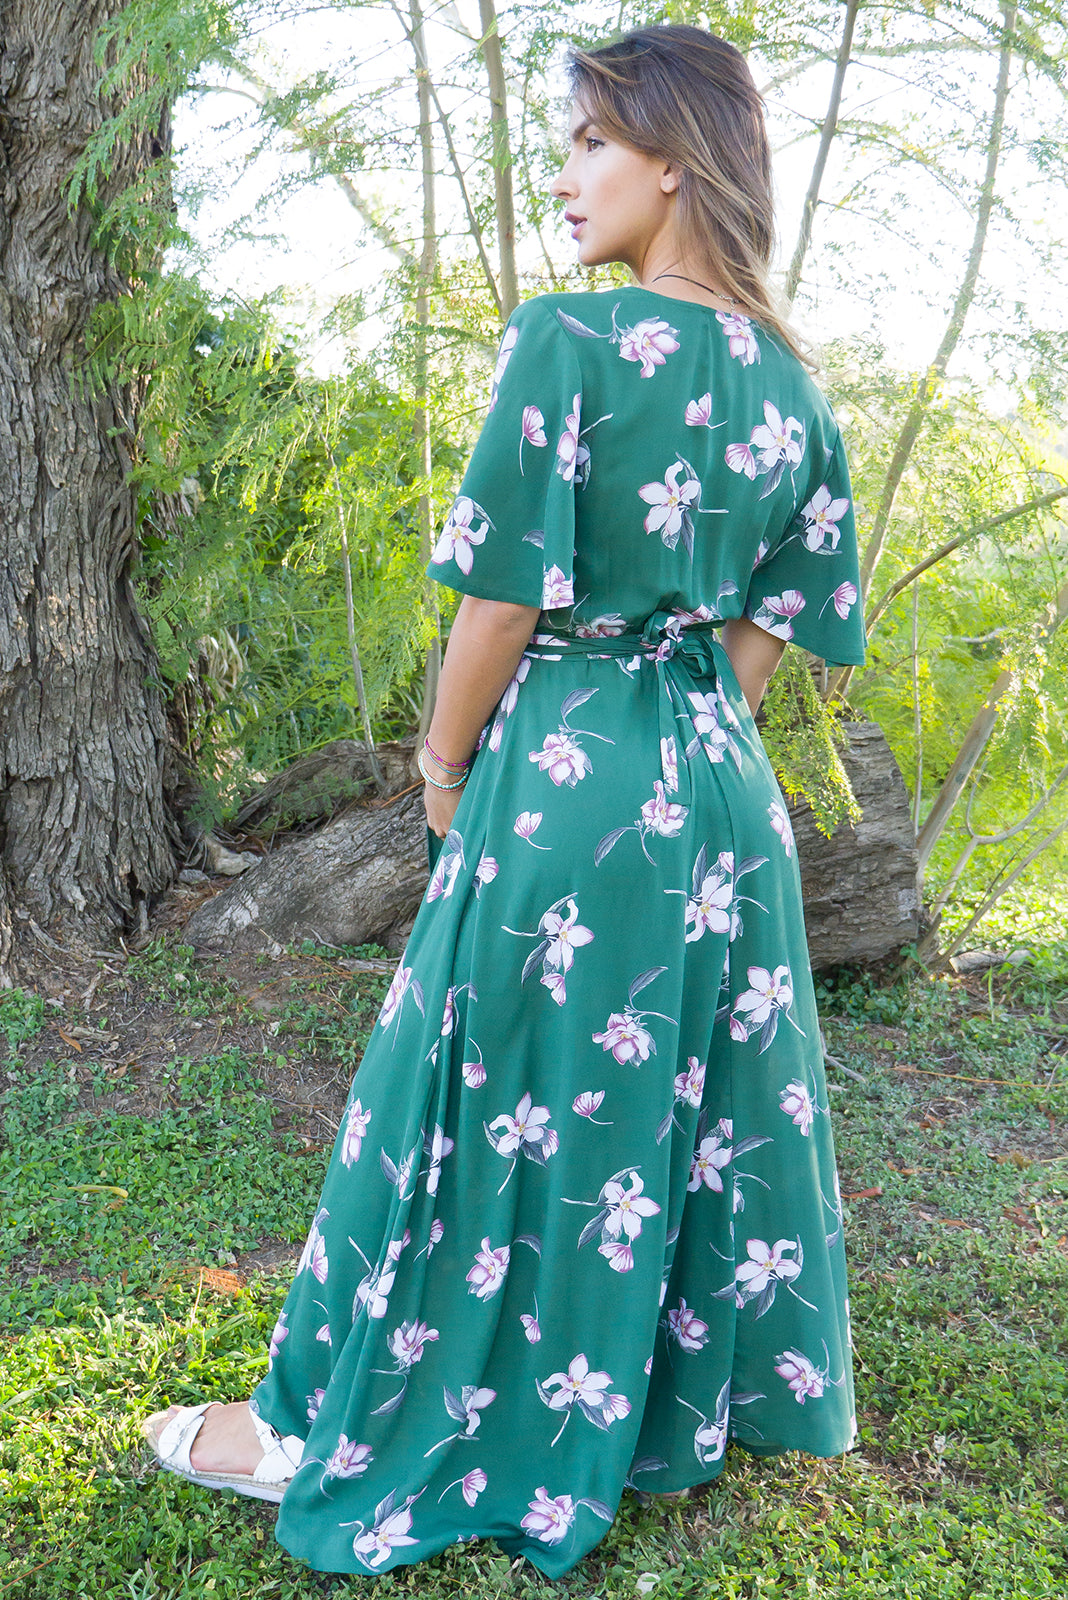 Petal Wrap Dress, in vintage green lilly print, with flutter sleeves, wrap around maxi dress, green wrap dress